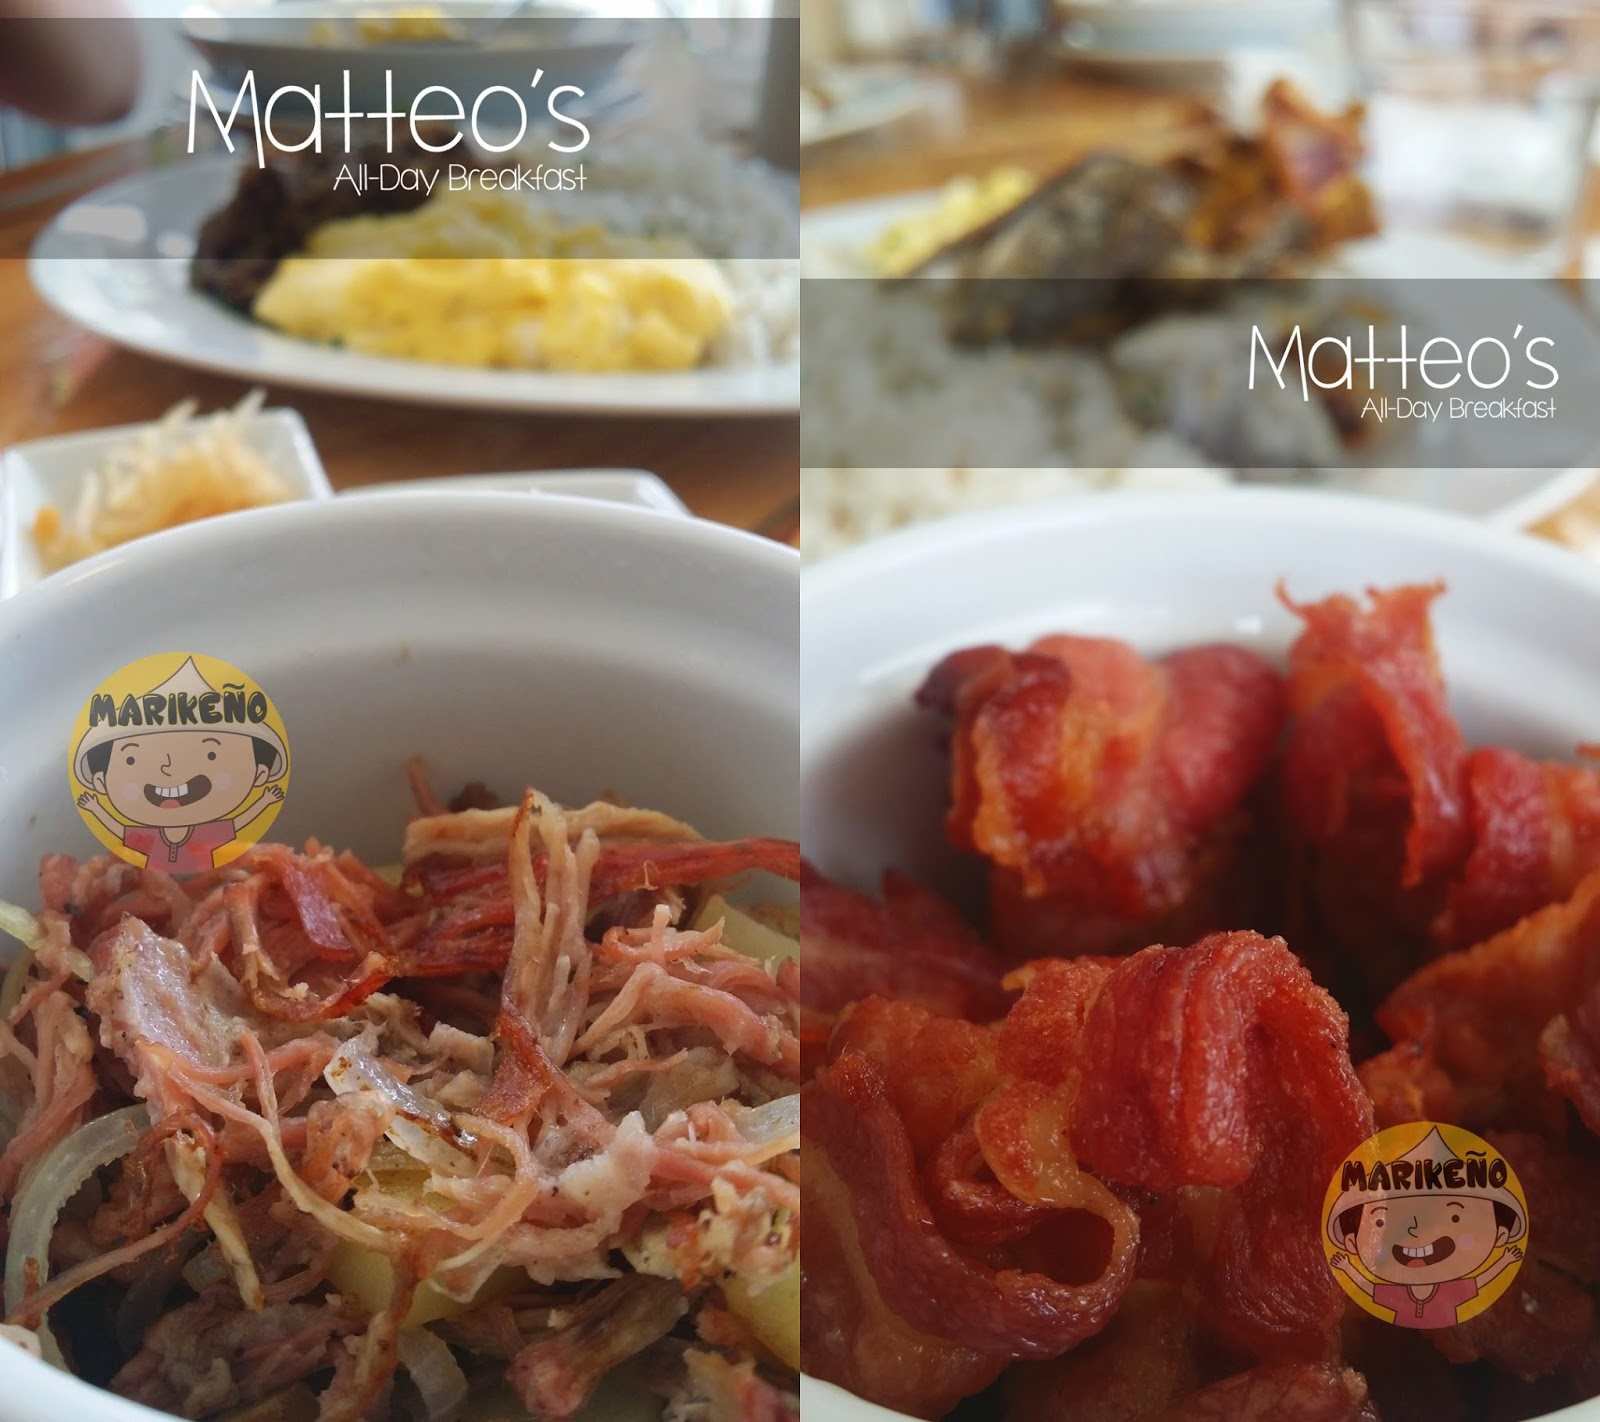 Windows Search Date 2018 10 22 Loop Lebaran Bundle Steam Wallet Idr 12000 10pcs If You Love Meat Be Sure To Try Their Homemade Corned Beef Hash And Flavorful Bacon Just Seasoned Right The Taste Not Too Powerful